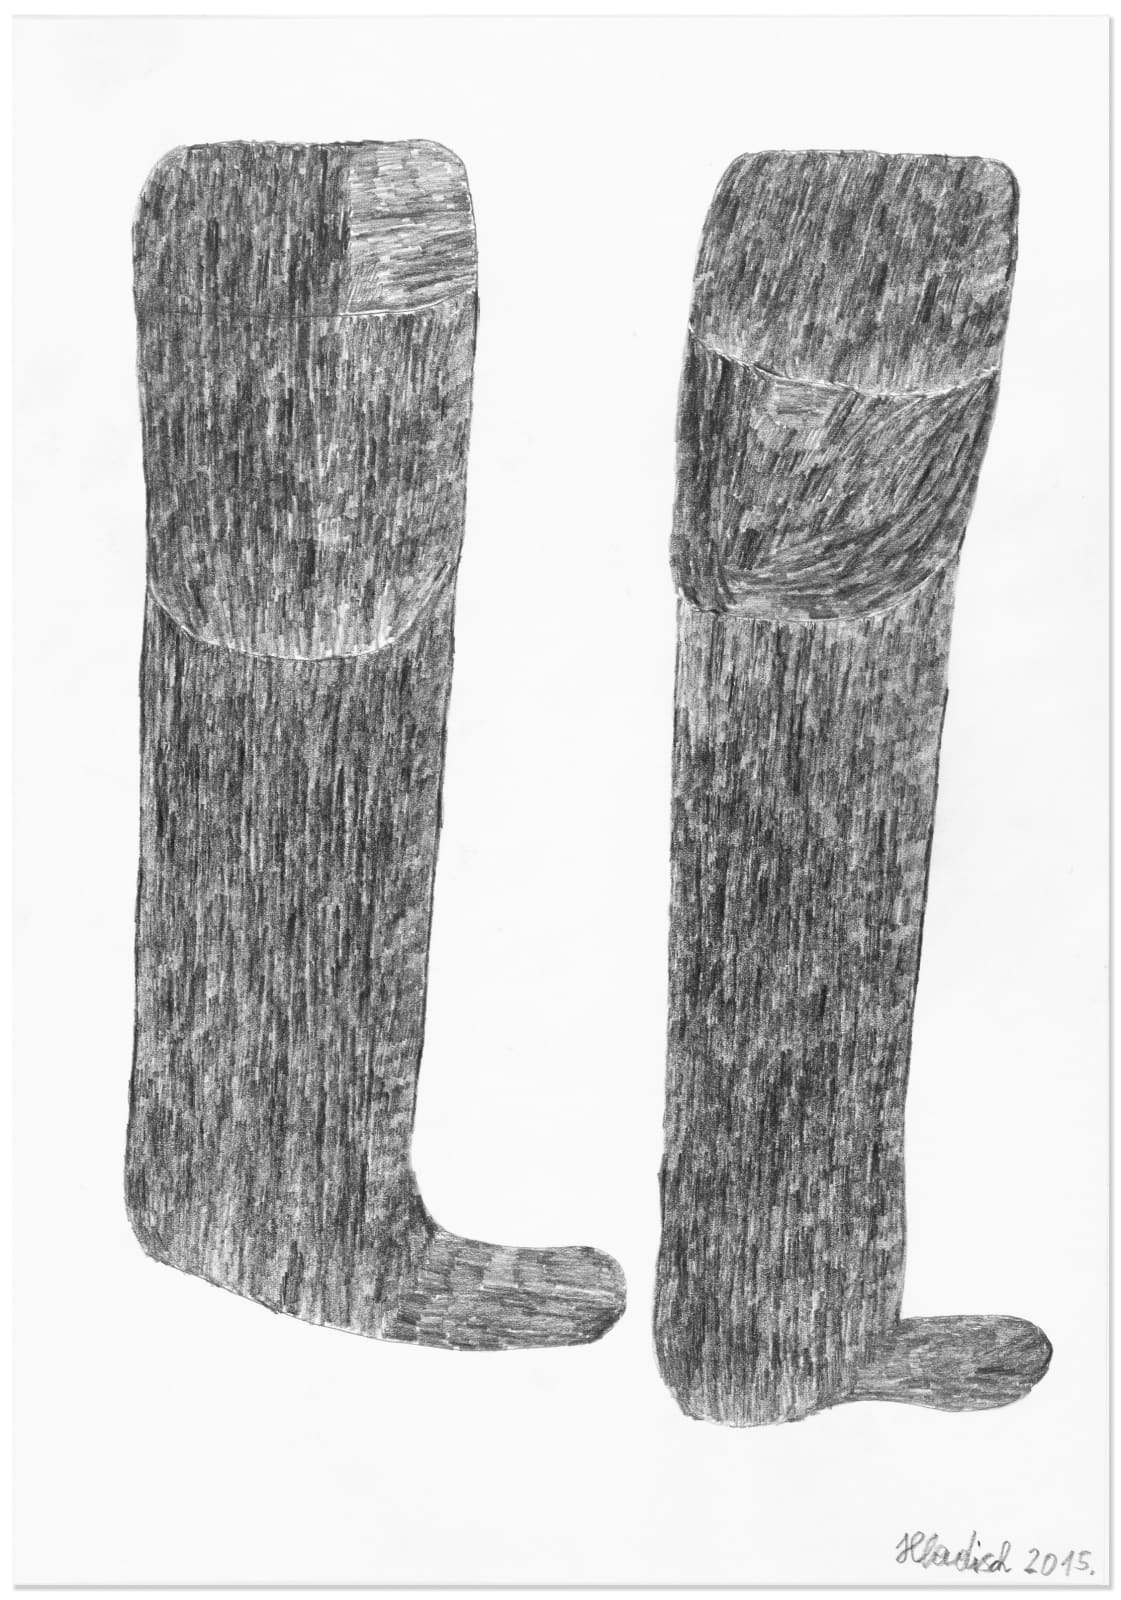 MOON BOOTS, 2015 Graphite on paper 16.5 x 11.7 in. (41.9 x 29.6 cm) HH 20 $3,400